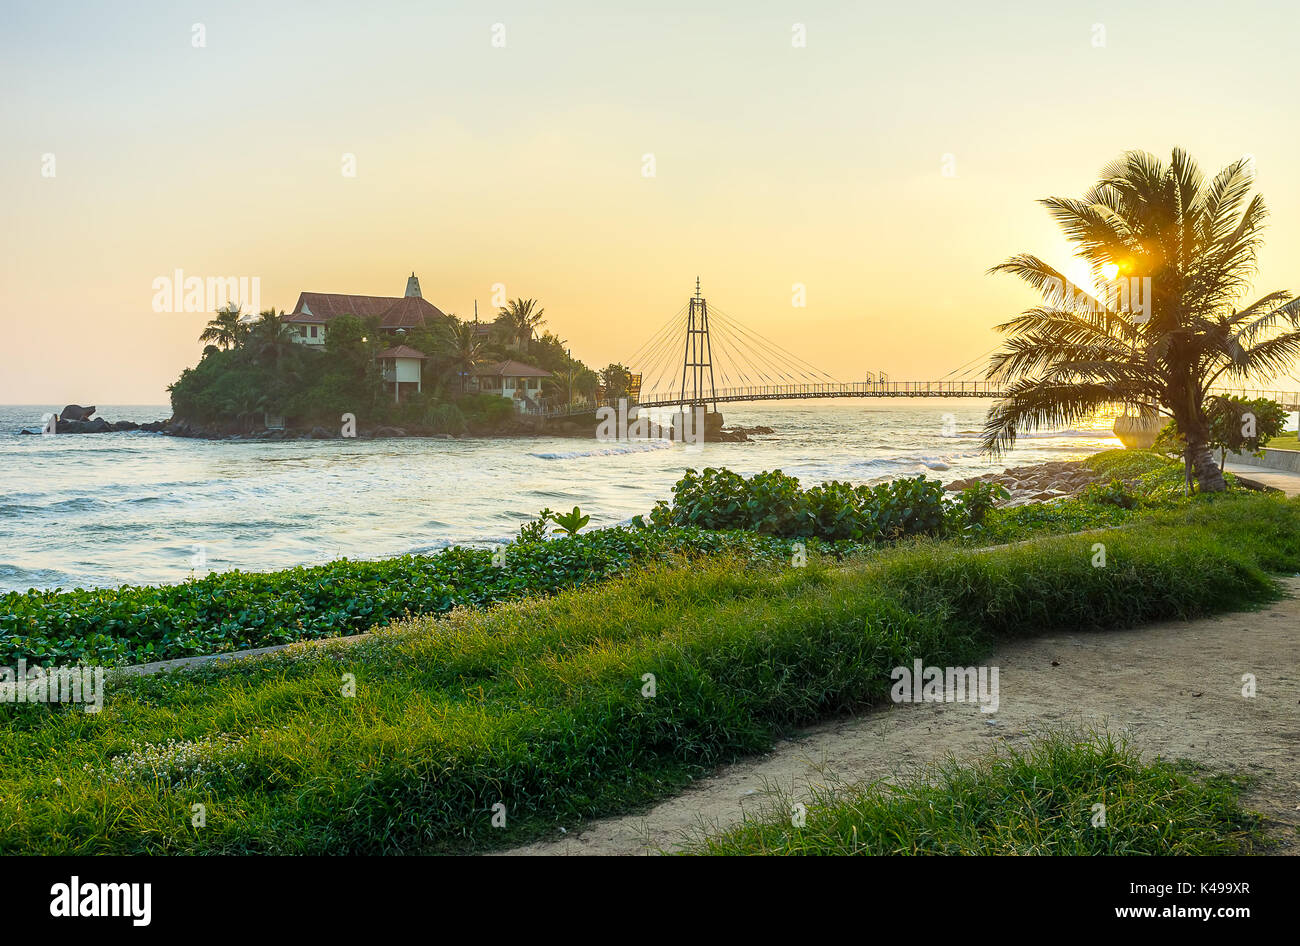 Sunset is the most romantic period of the day and is the best time for leisure walks along coastline enjoying beautiful views on Indian Ocean, Matara - Stock Image